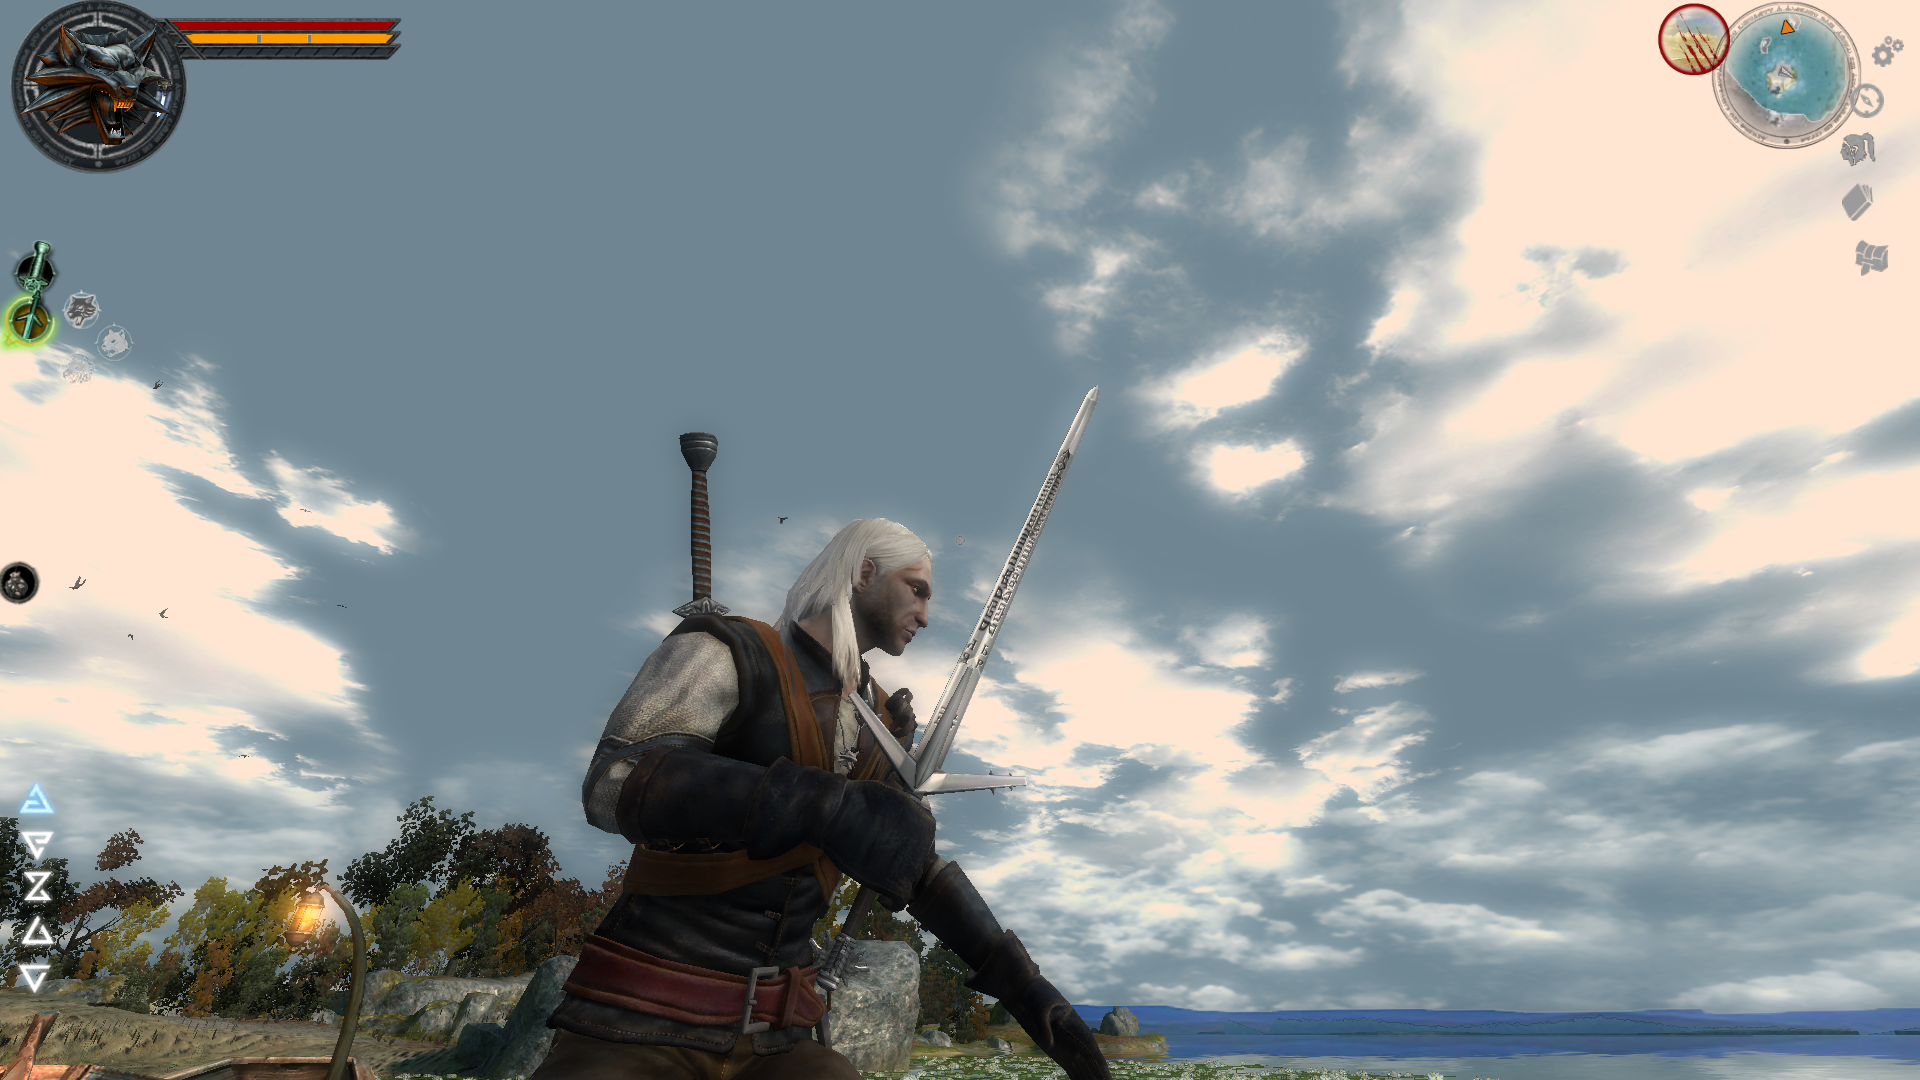 witcher_2020_08_13_02_34_36_202.png